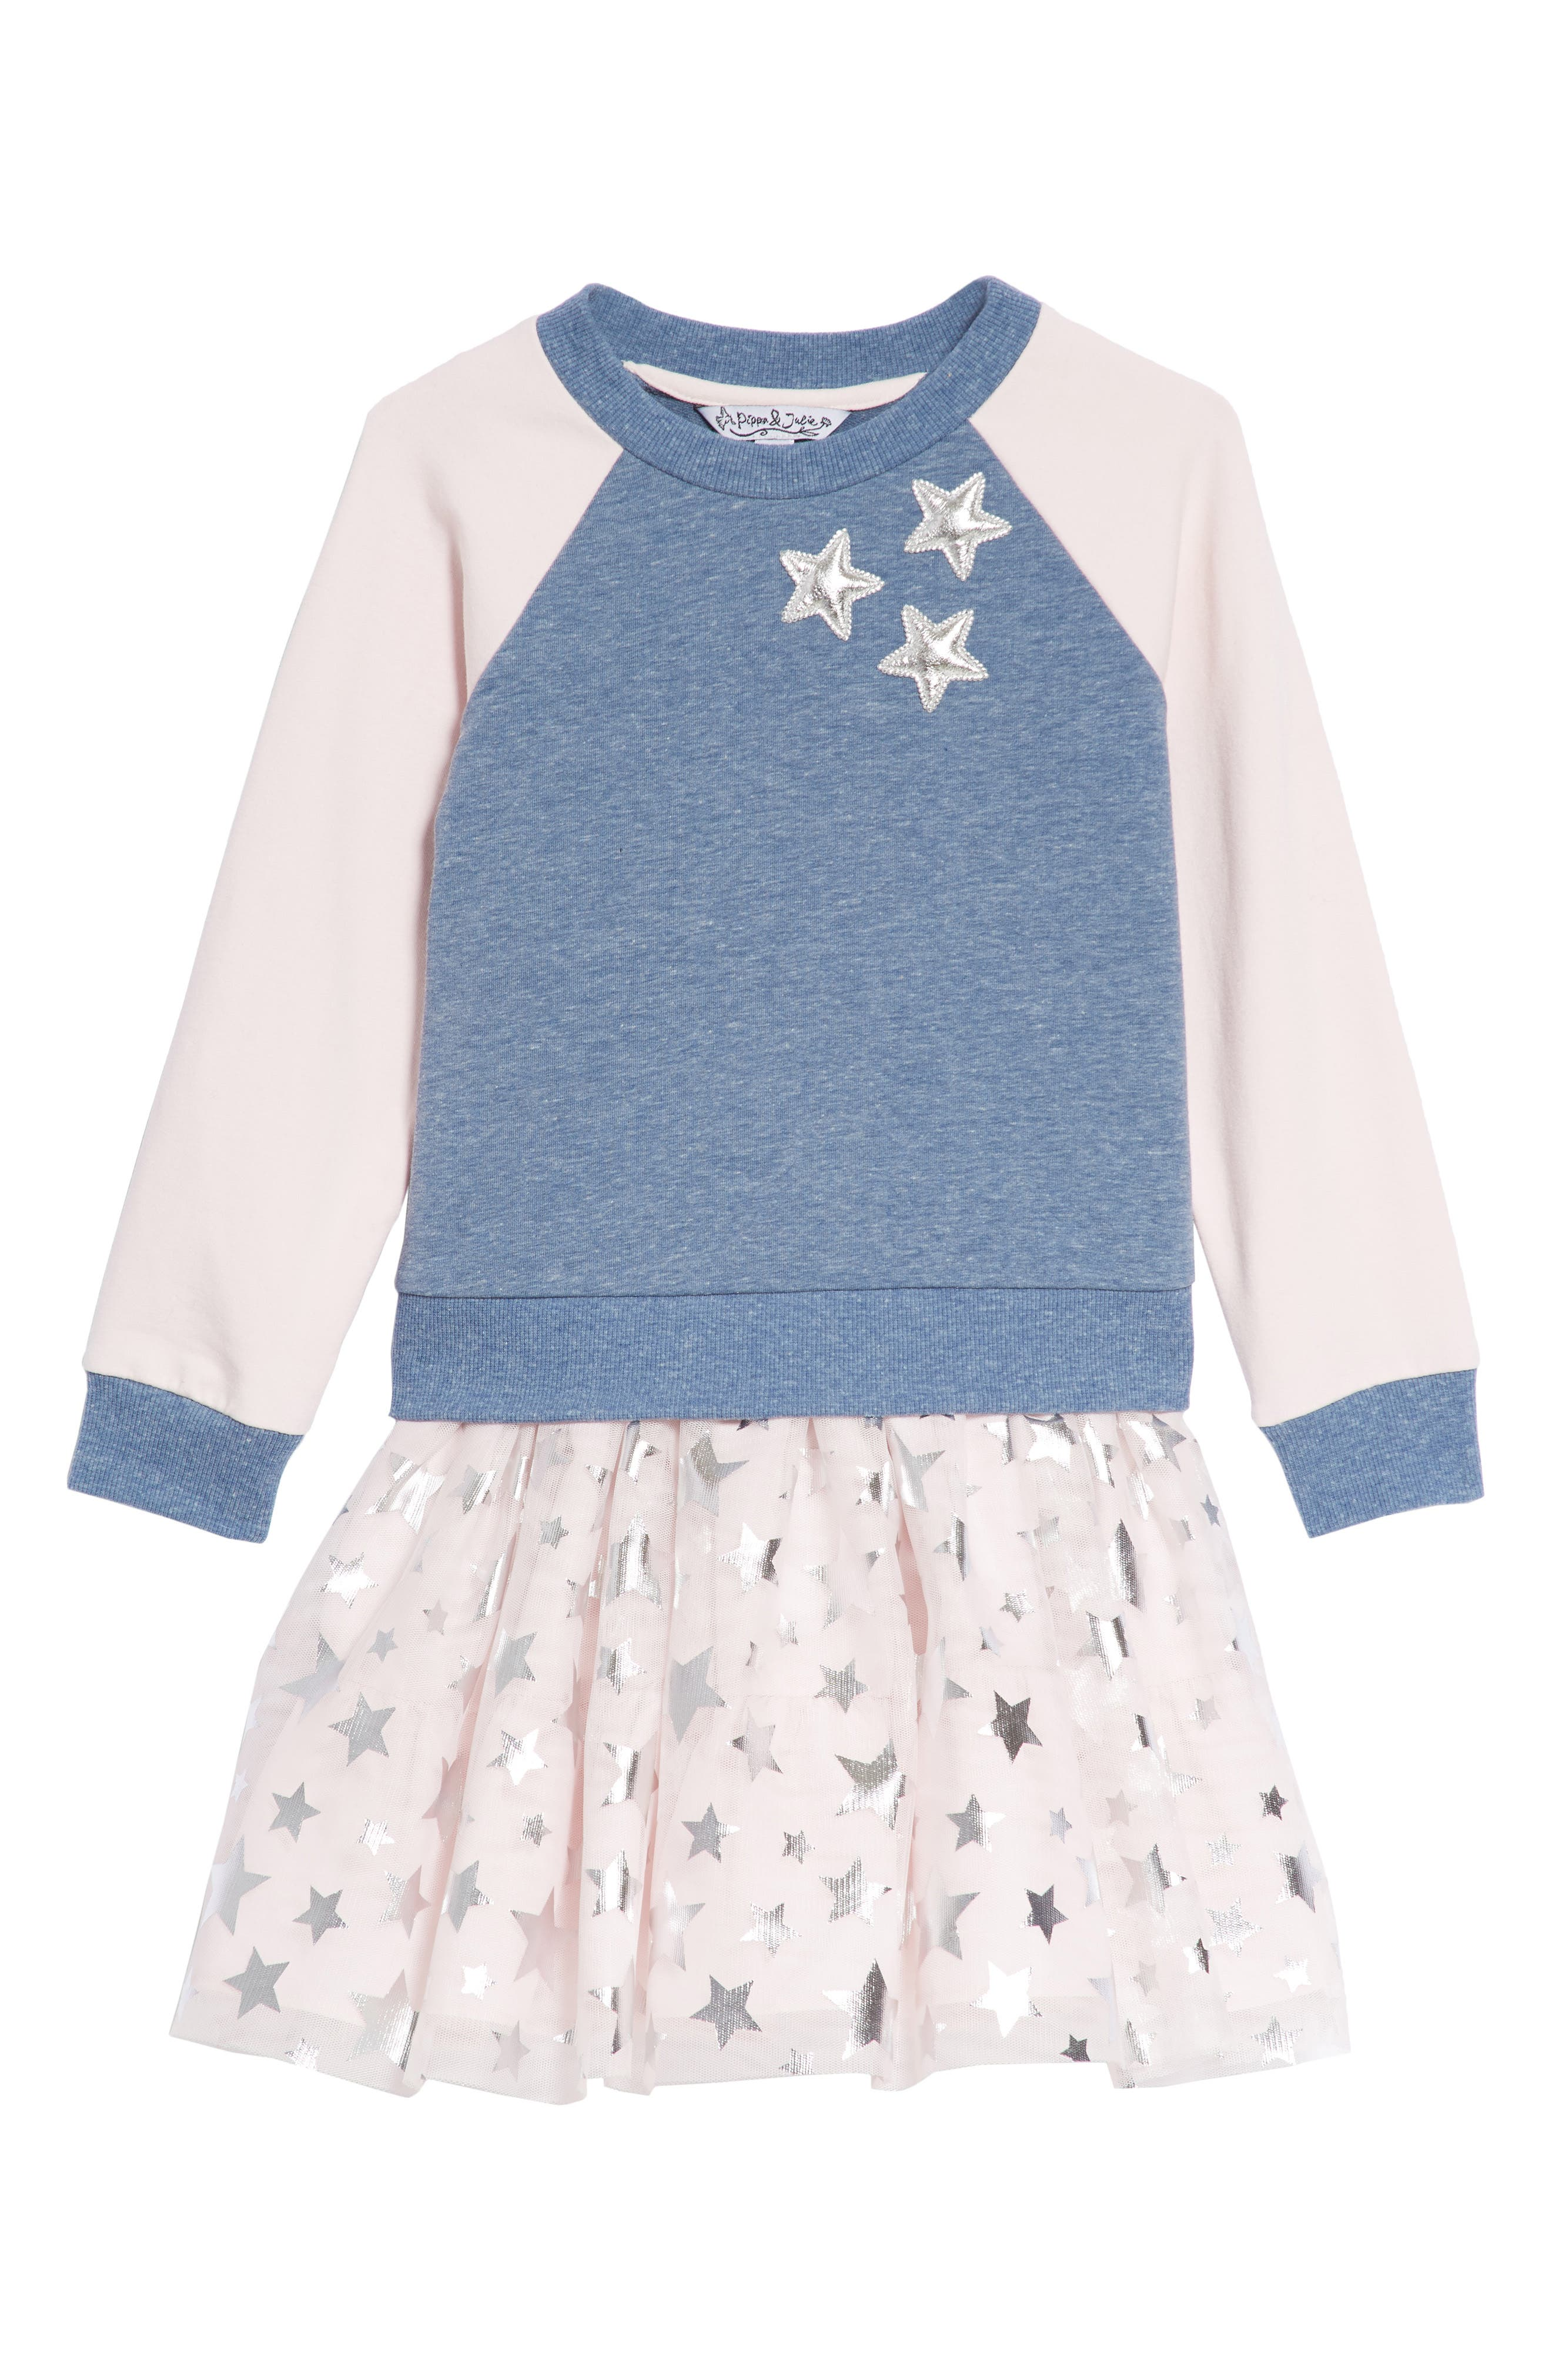 Star Tank Dress & Sweatshirt Set,                         Main,                         color, 401